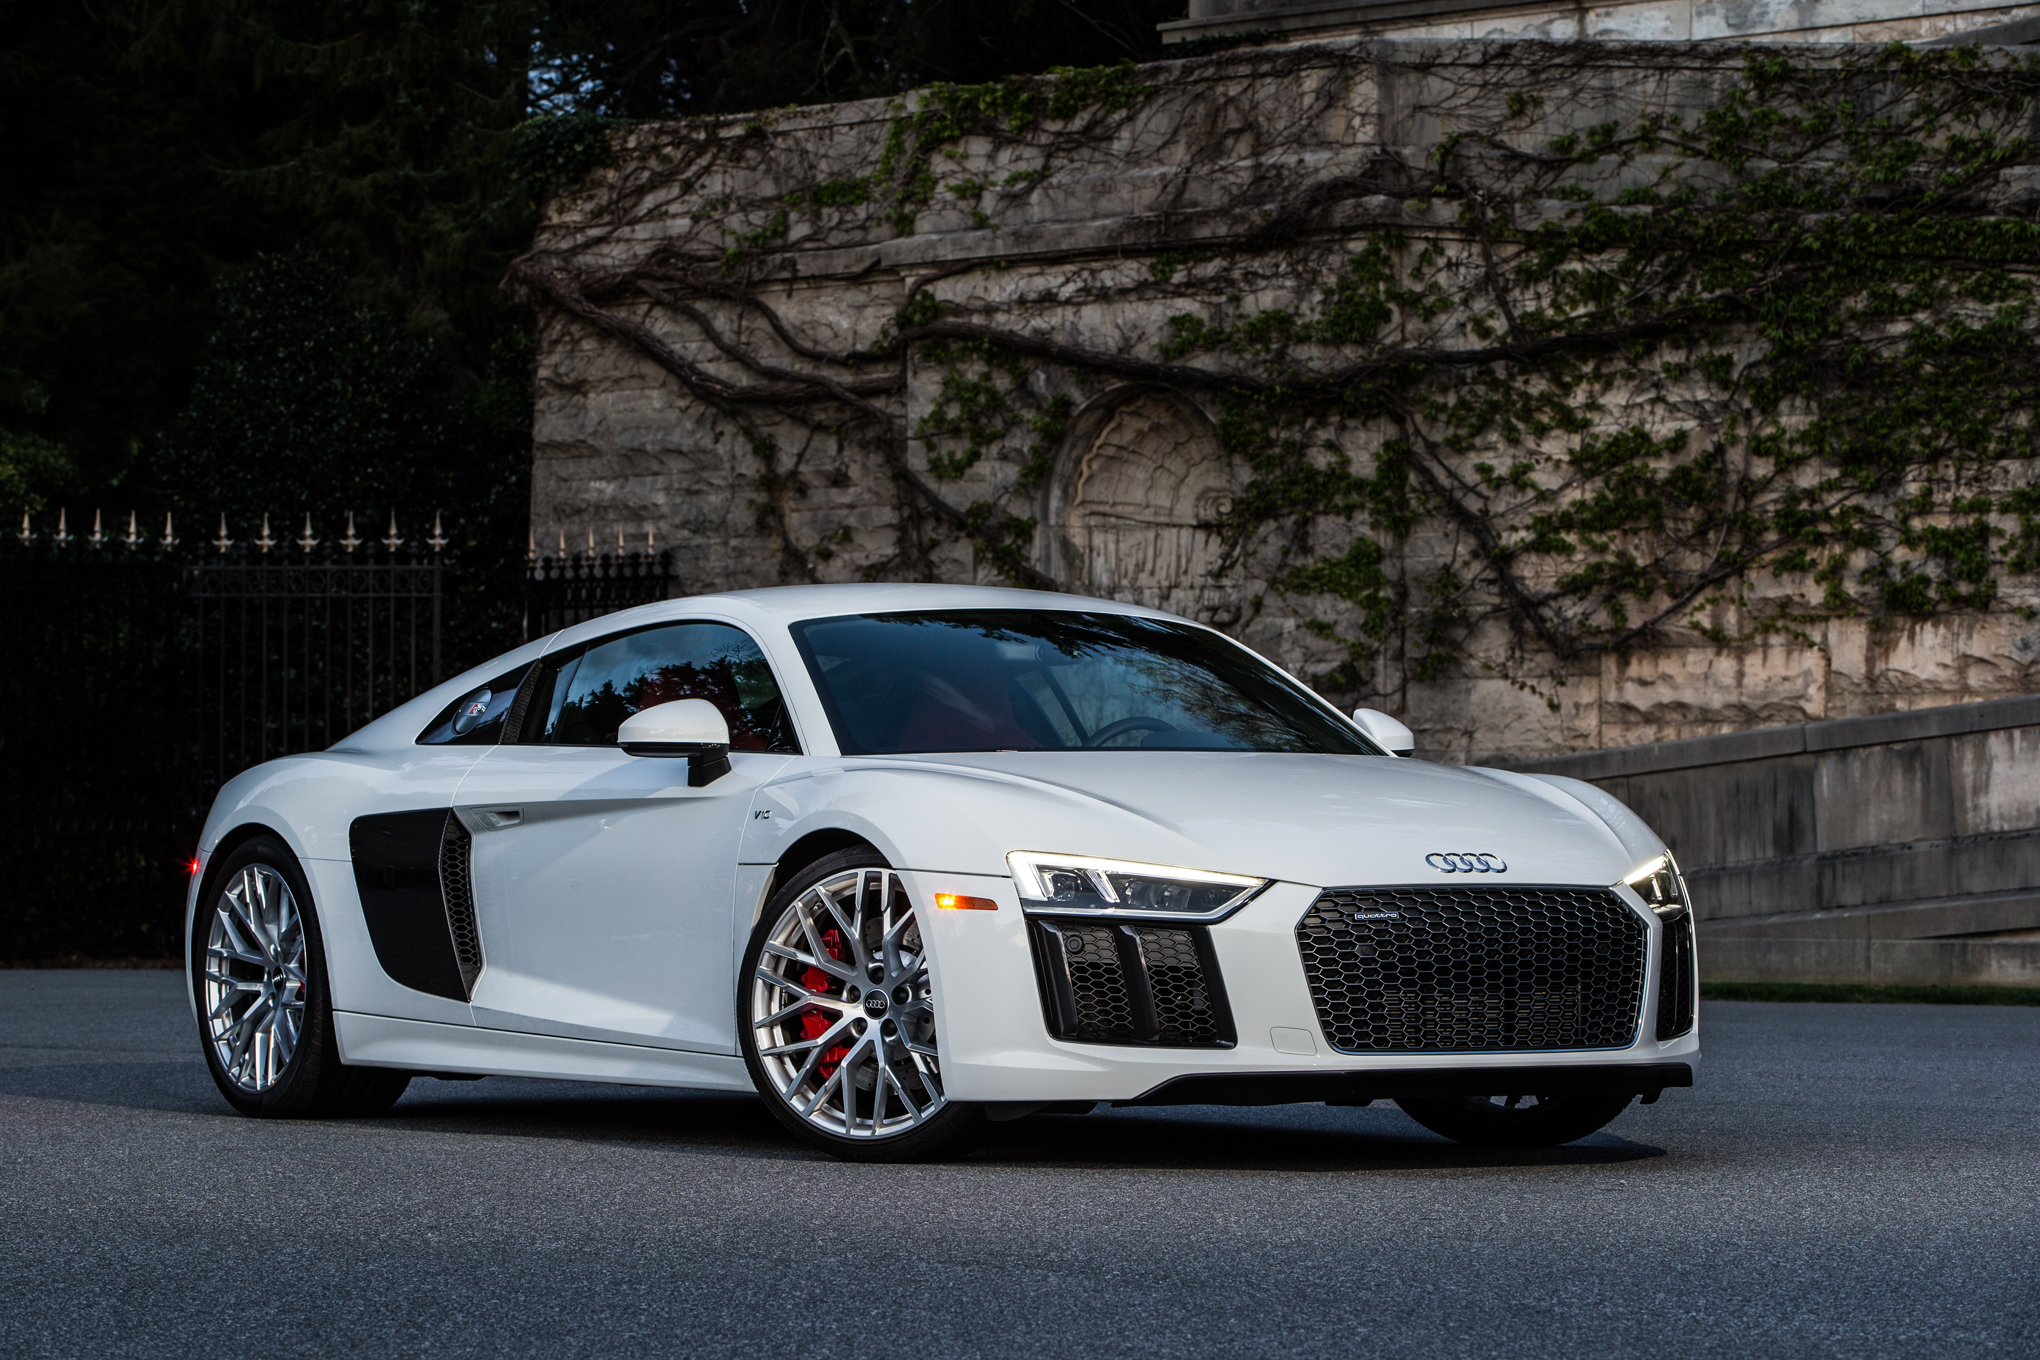 Audi R8 V10 Vs The V10 Plus See The Difference Moto